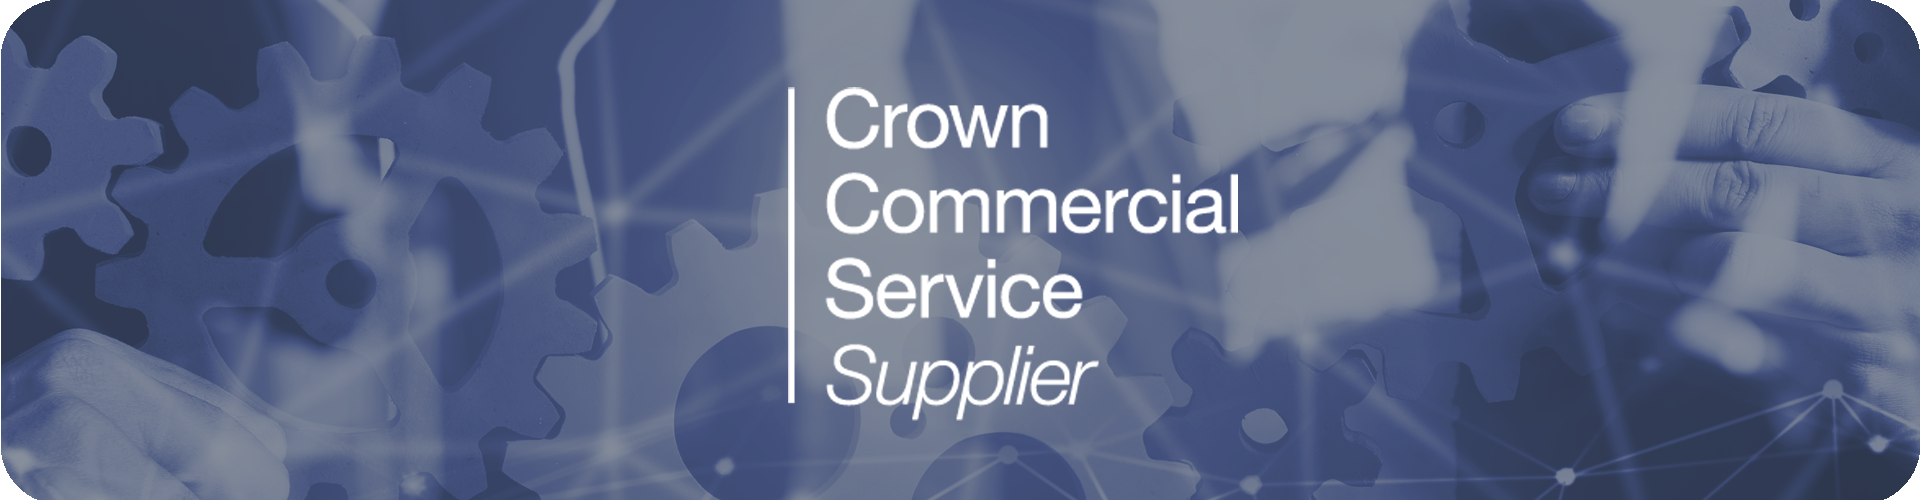 Crown Commercial Supplier Banner